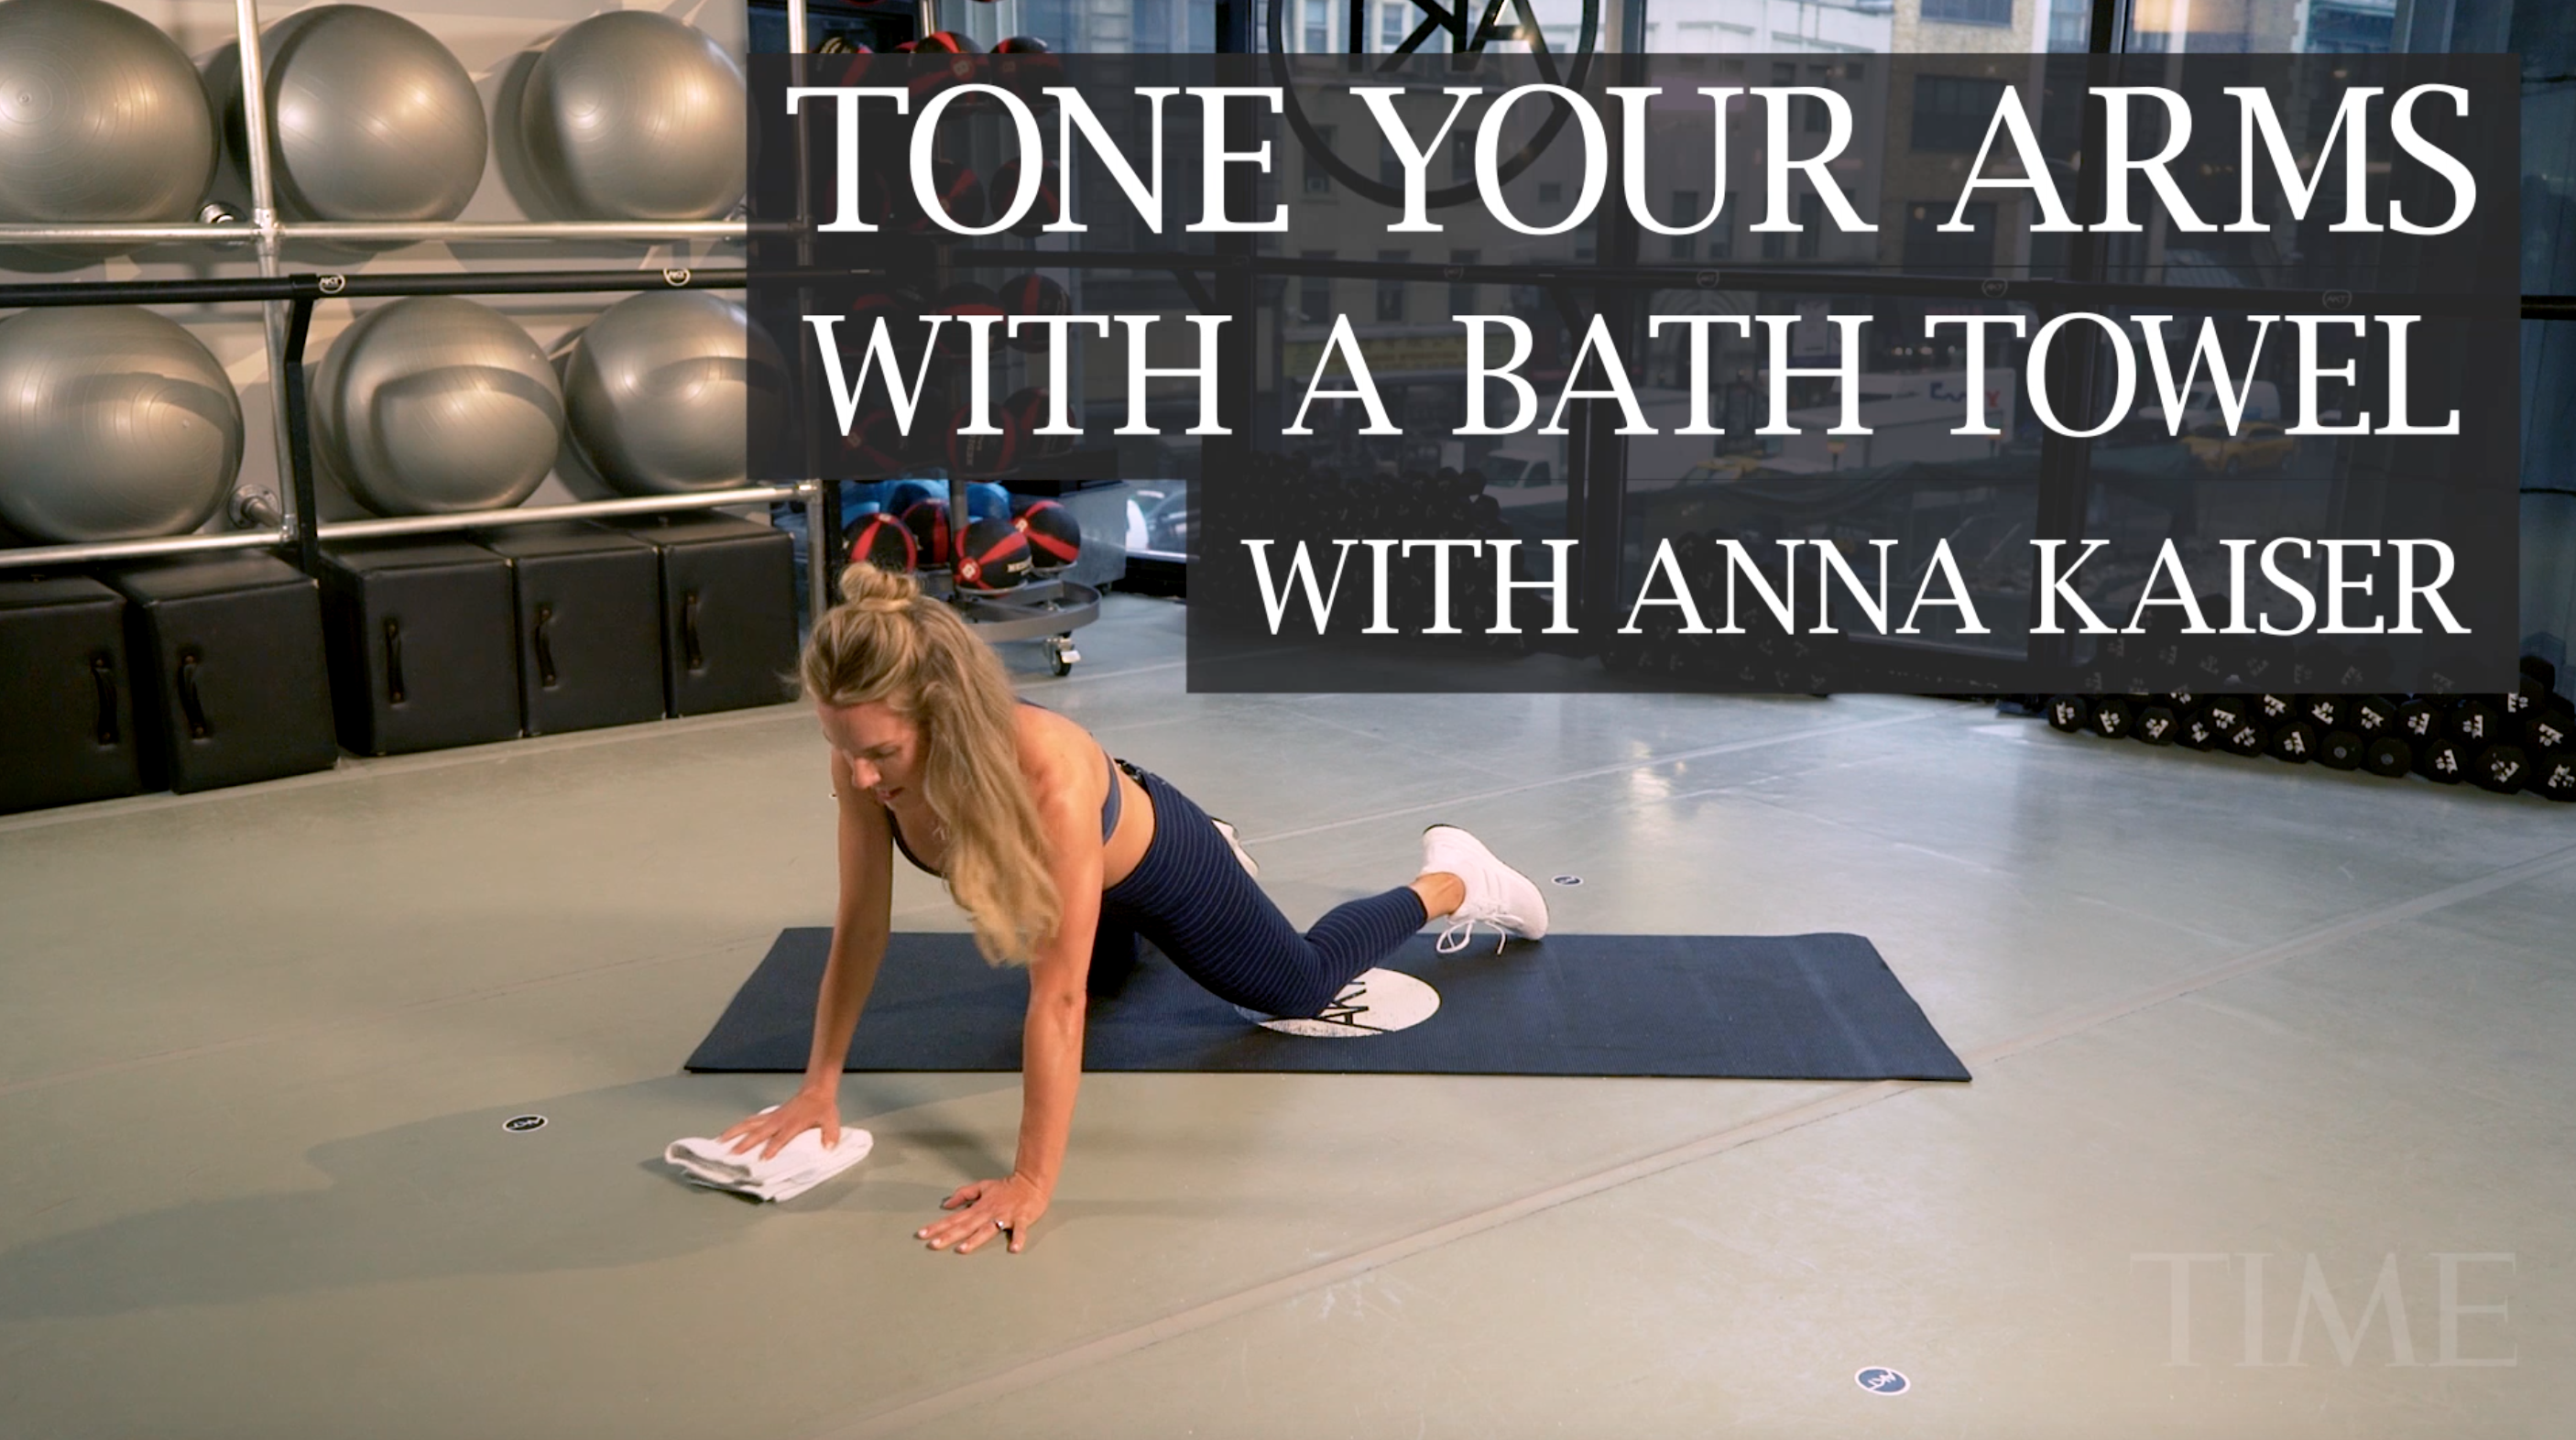 Anna Kaiser, founder of AKT in Motion, demonstrating an arm toning workout with a bath towel.